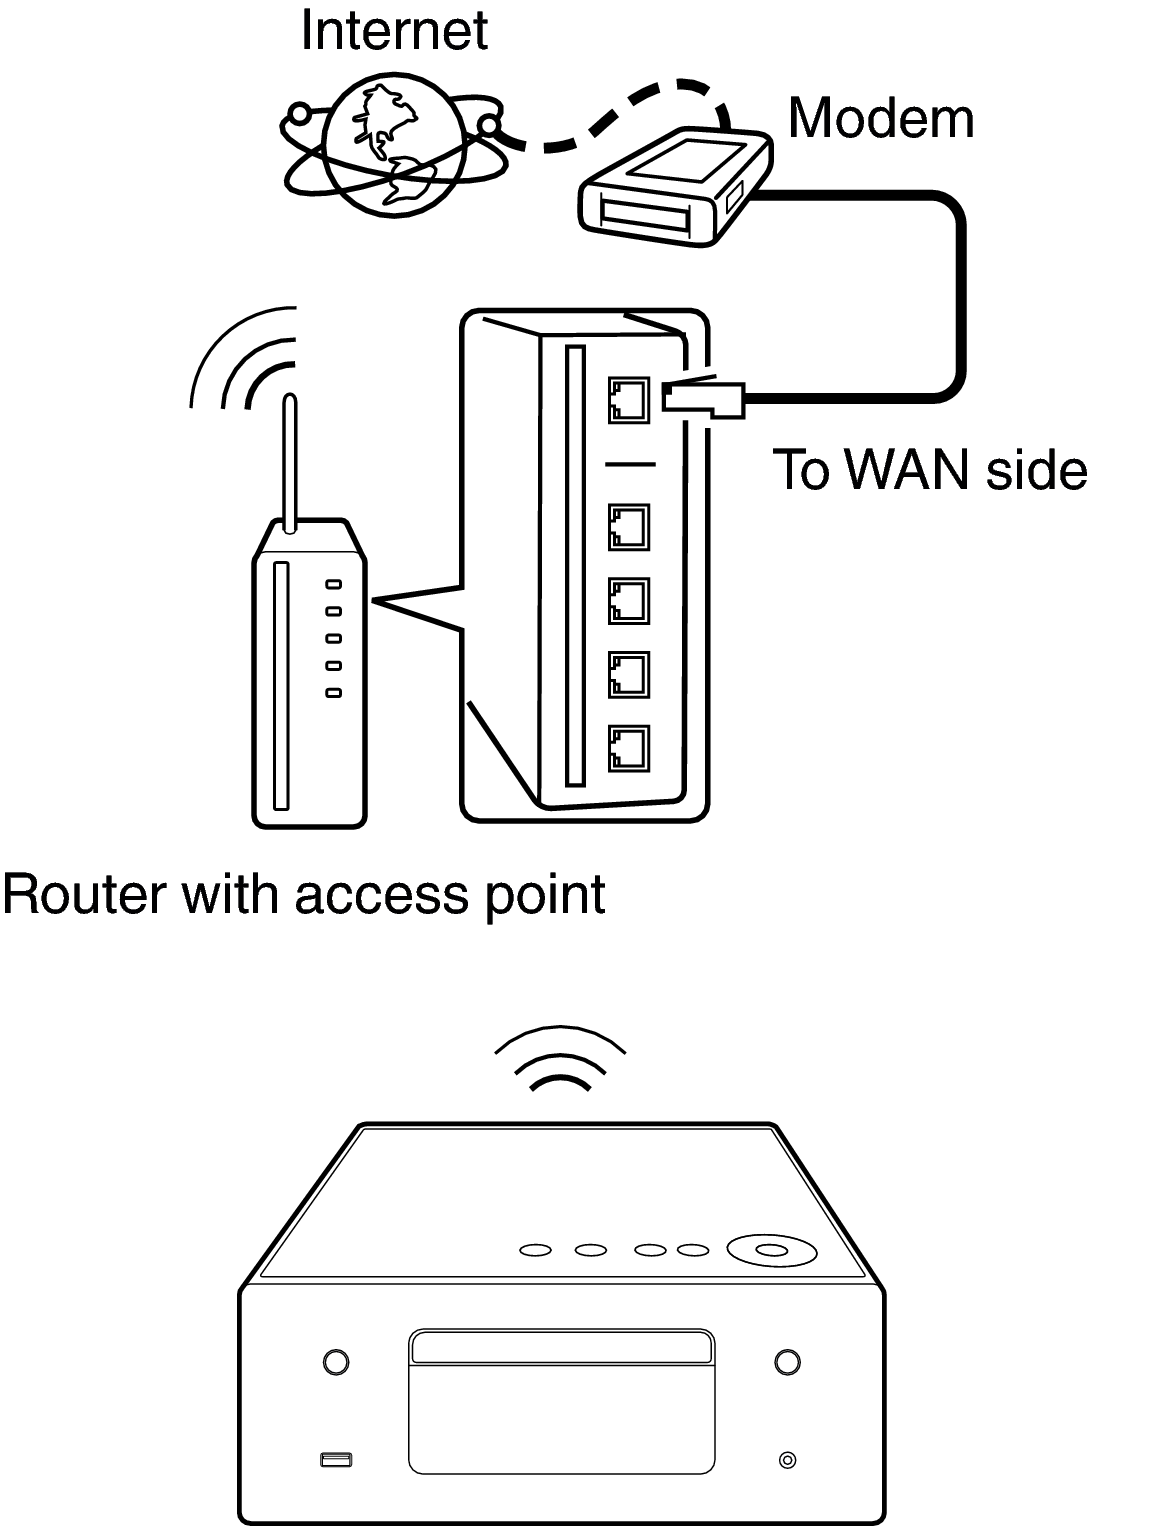 Wireless Lan Rcd N10 Using Router Diagram Conne Wifi Rcdn10